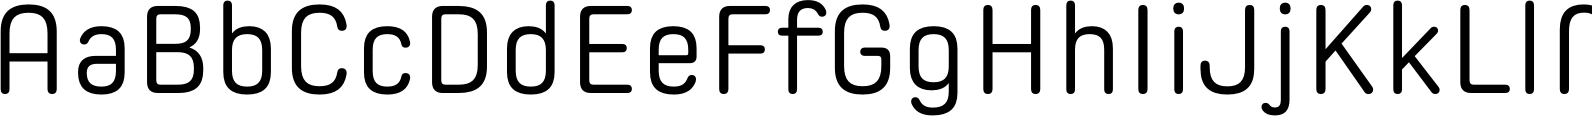 Spoon Regular Font